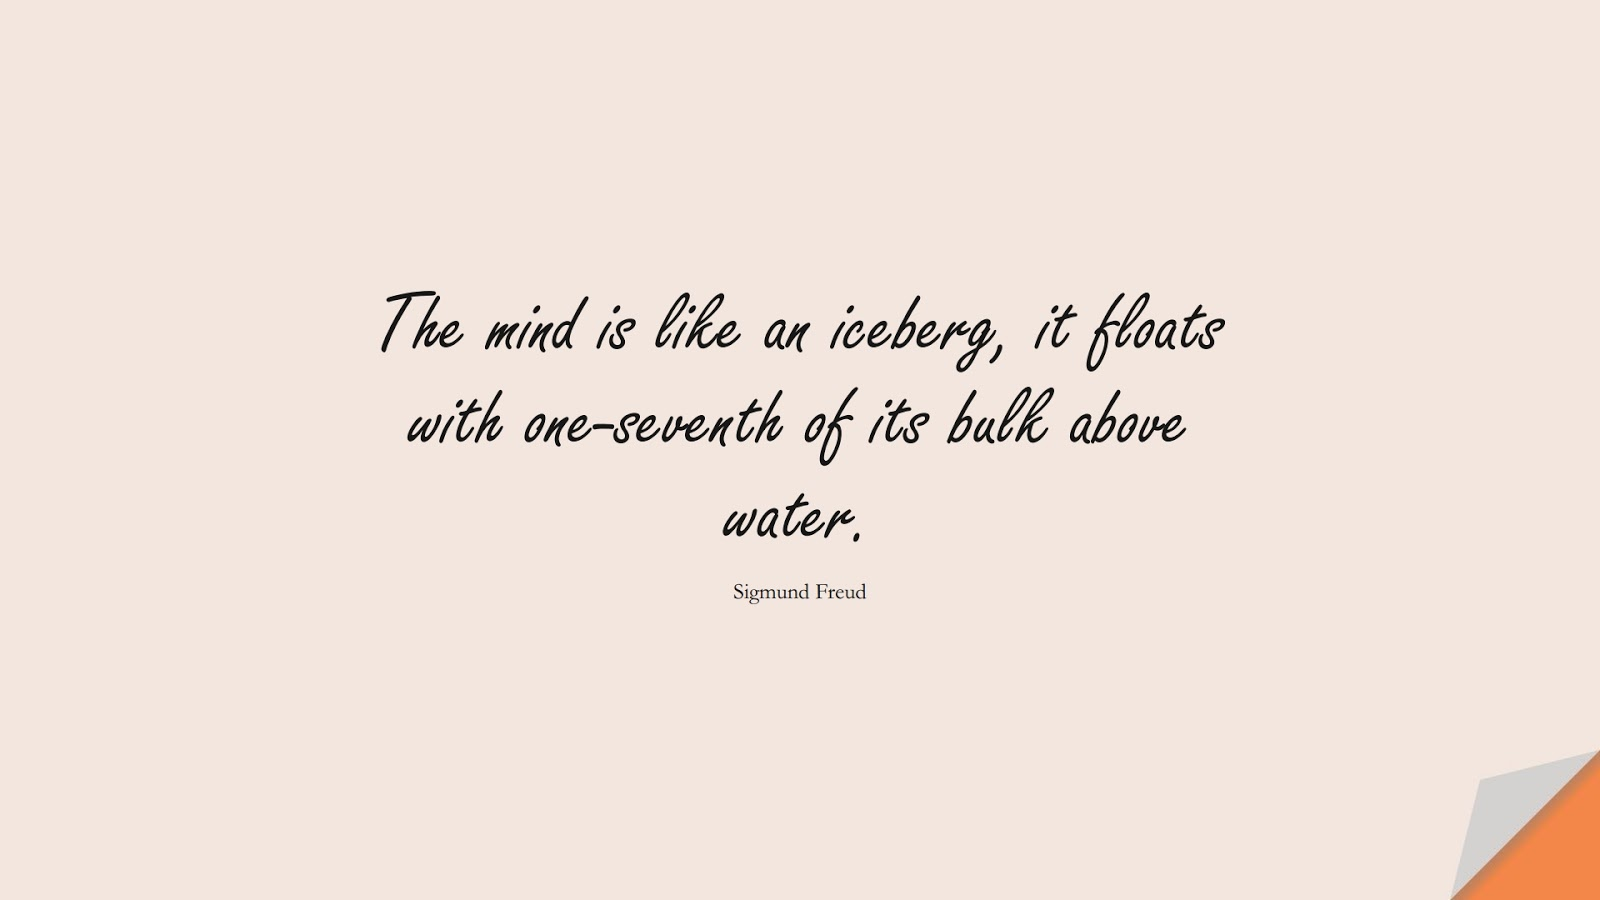 The mind is like an iceberg, it floats with one-seventh of its bulk above water. (Sigmund Freud);  #InspirationalQuotes